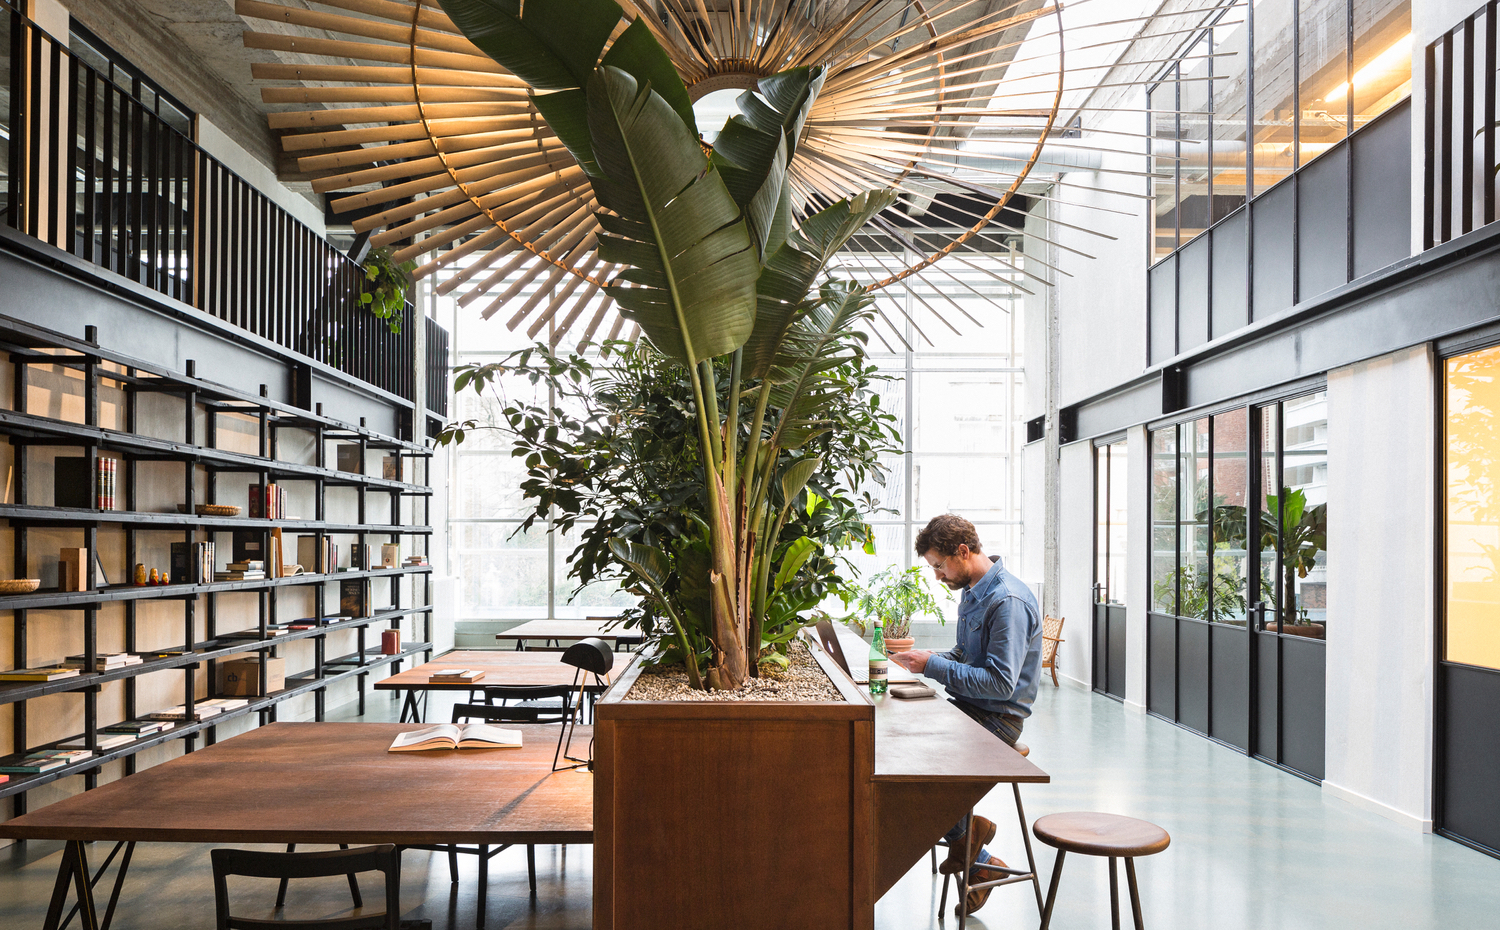 espacio de trabajo de Fosbury & Sons del estudio Going East